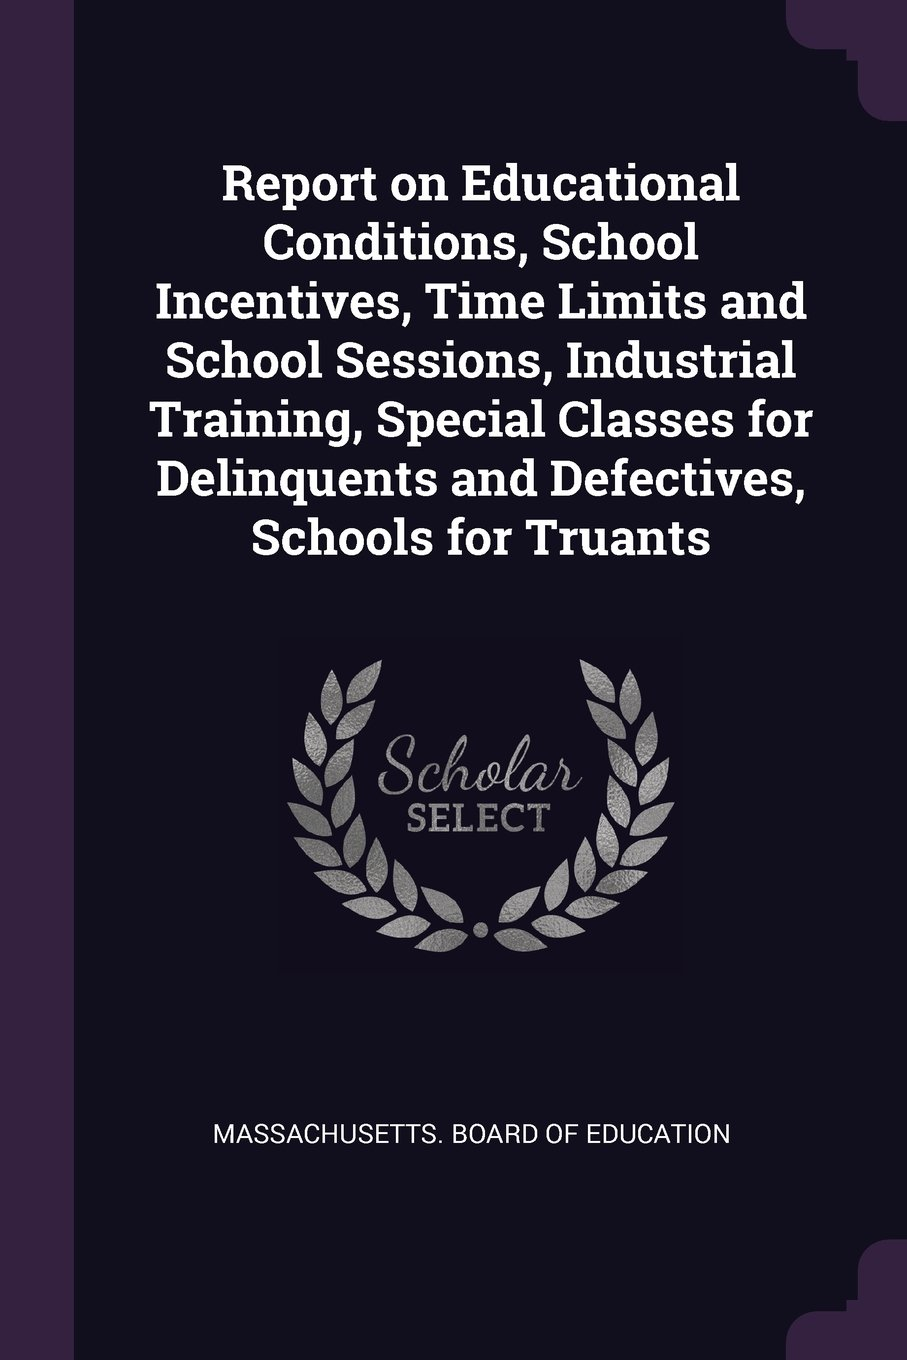 Report on Educational Conditions, School Incentives, Time Limits and School Sessions, Industrial Training, Special Classes for Delinquents and Defectives, Schools for Truants pdf